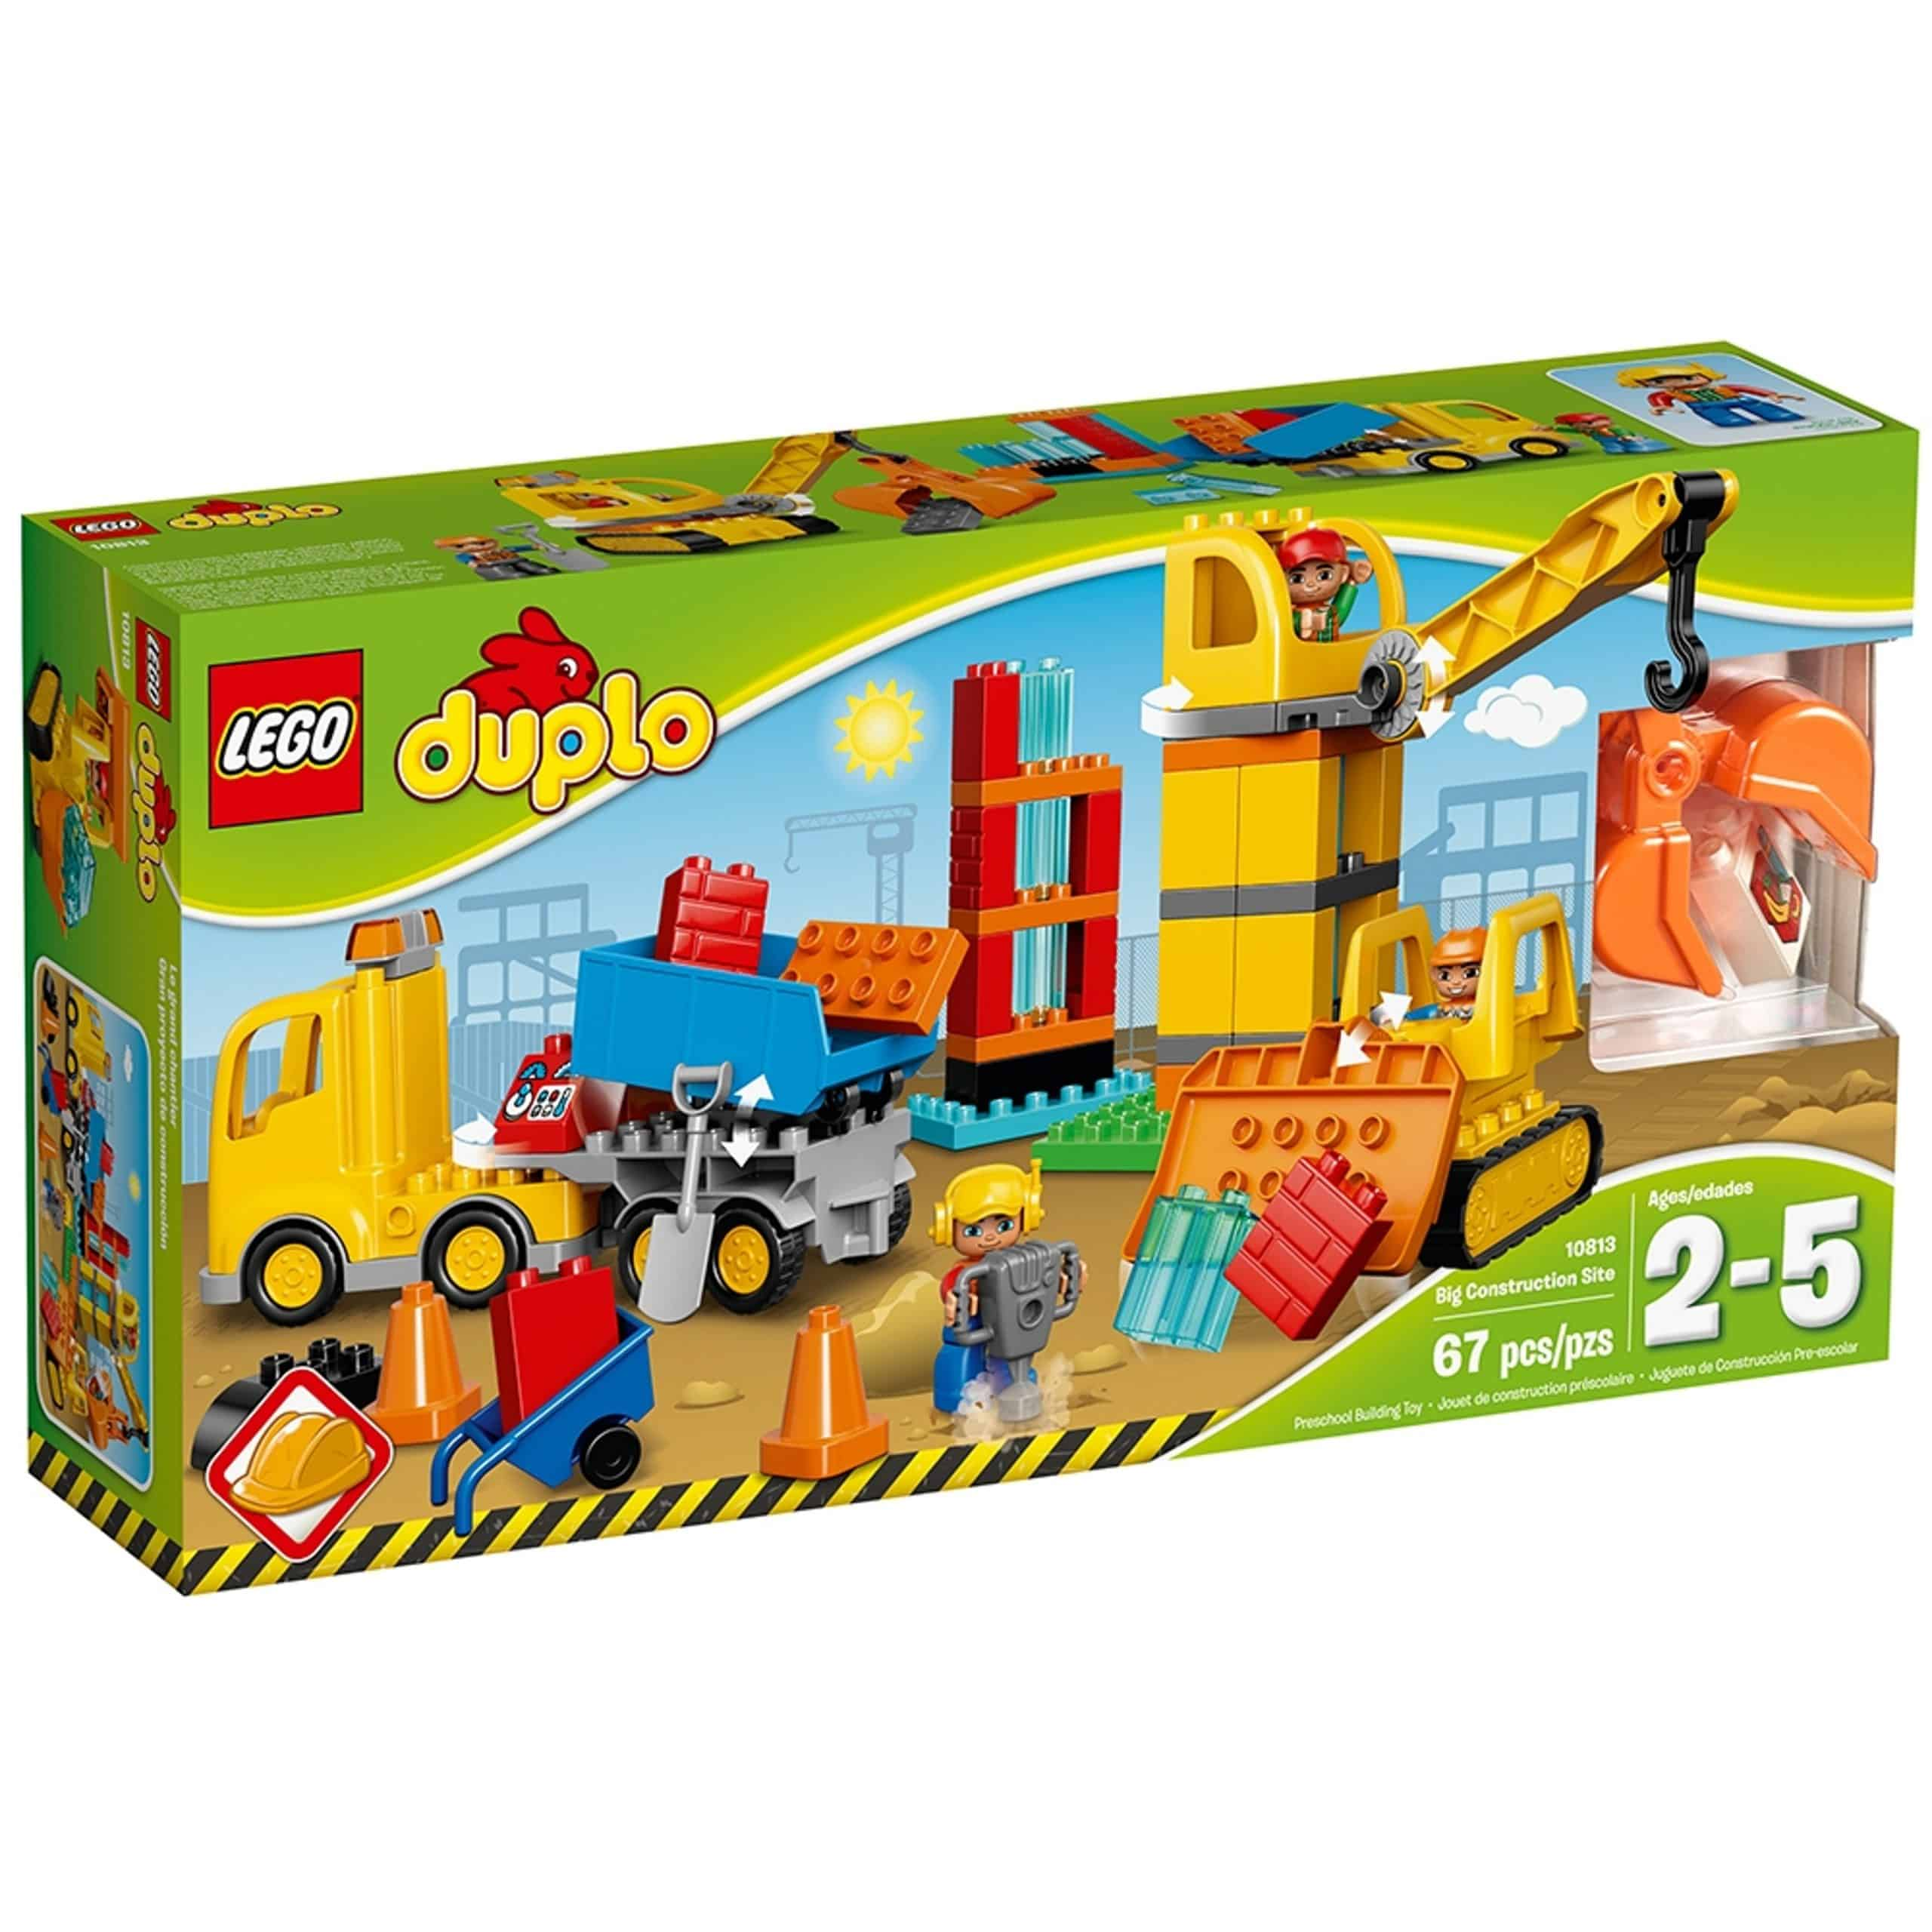 lego 10813 grose baustelle scaled